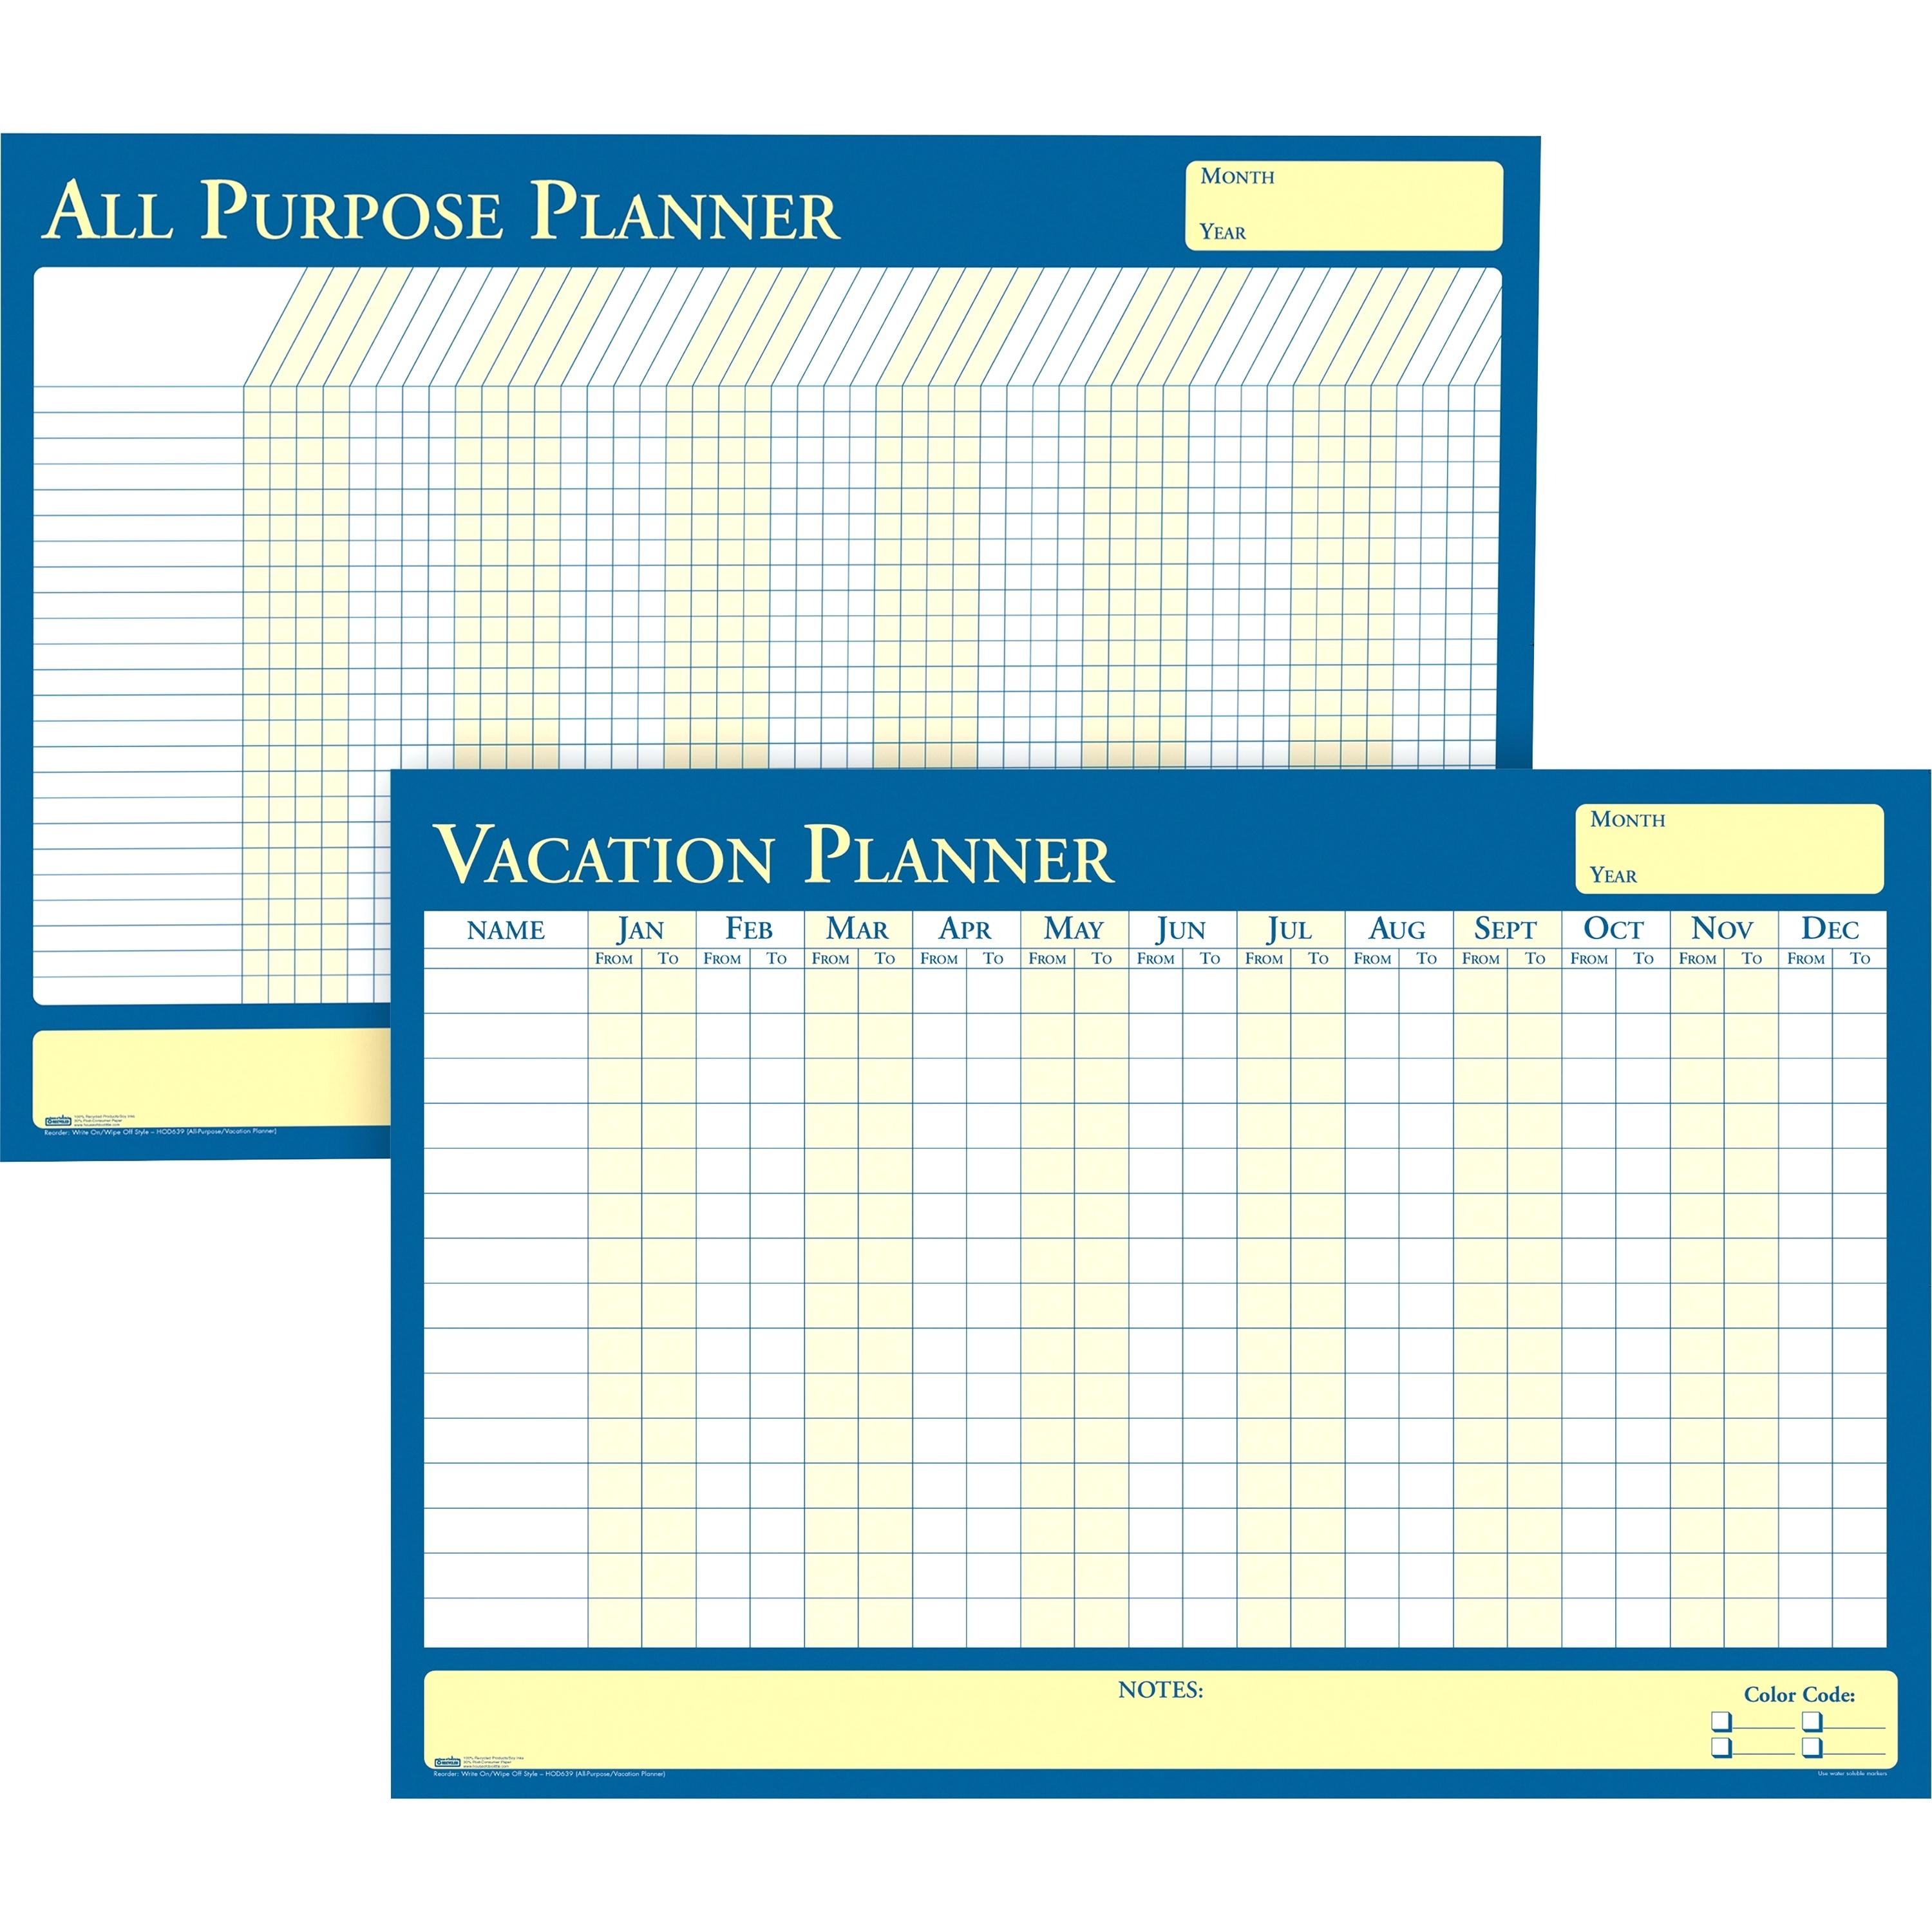 Long Service Leave Calculation Spreadsheet Inside Example Of Long Service Leave Calculation Spreadsheet Template